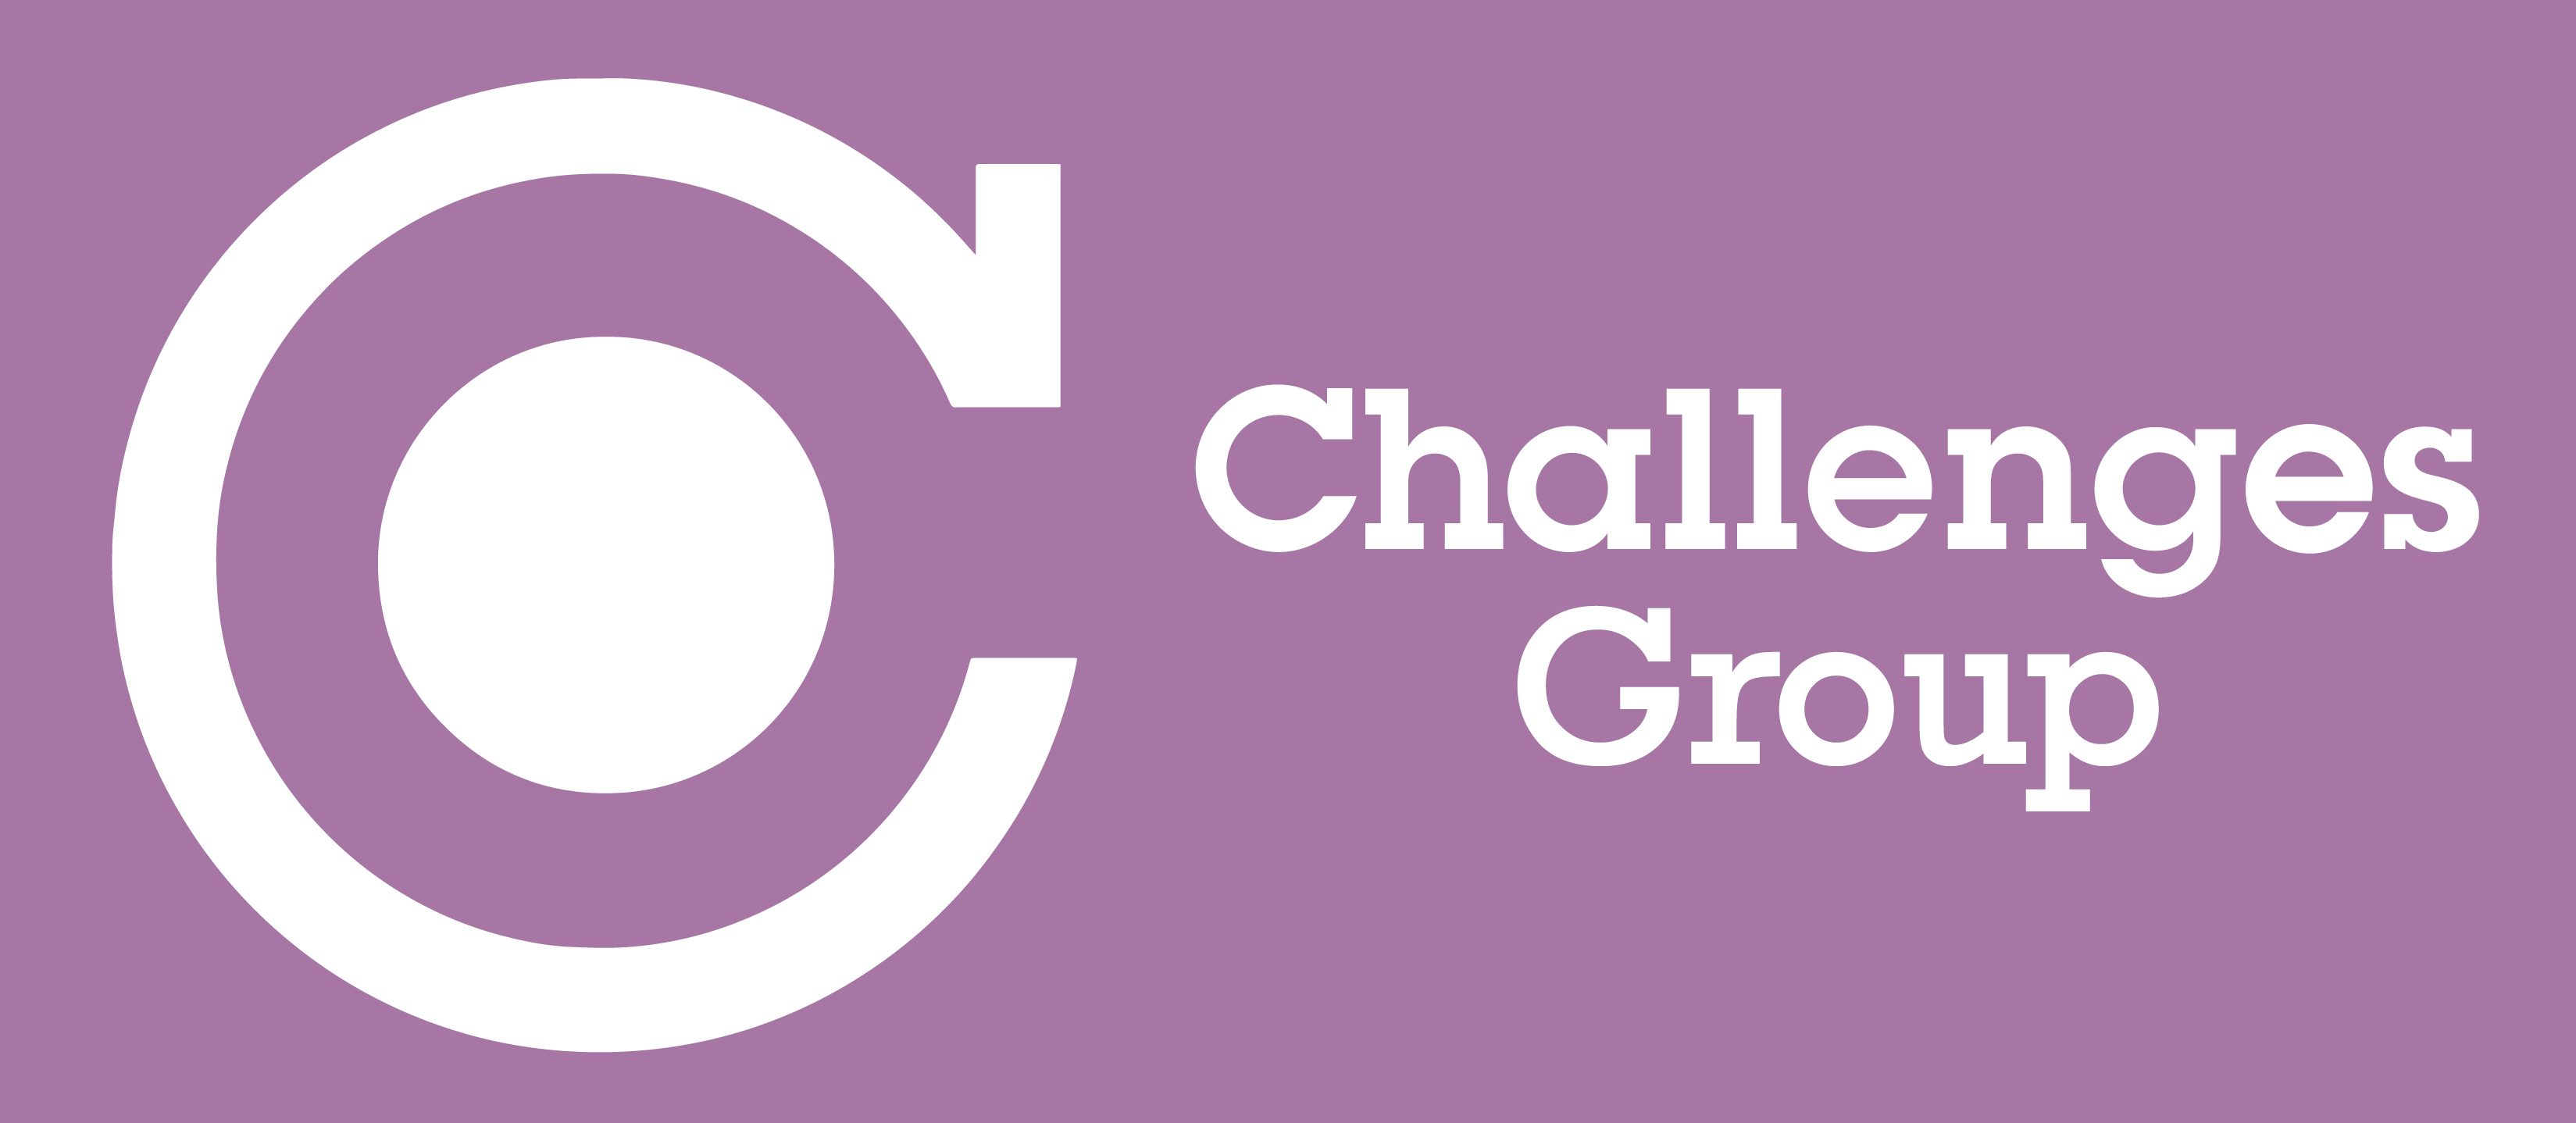 Challenges Group Logo